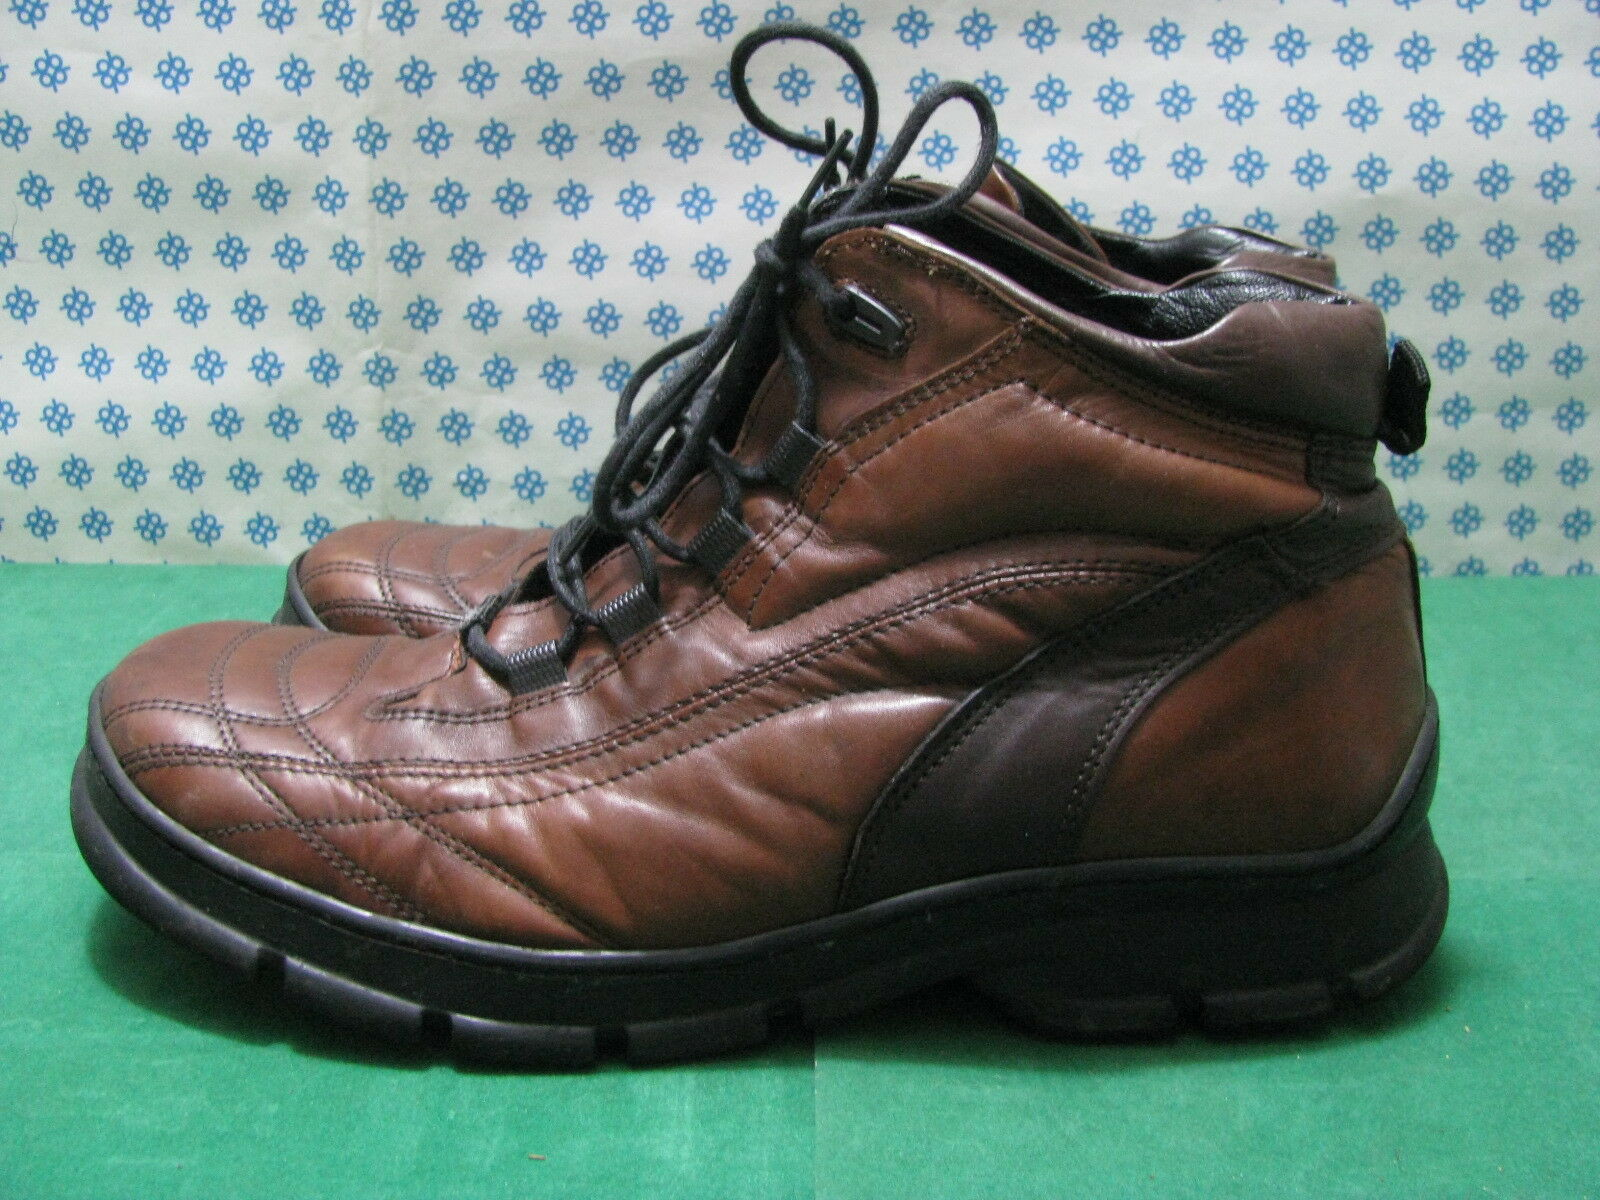 Boots Genuine Leather Supersoft, Heavy Duty - N°45 - K.  K Made in Itaky